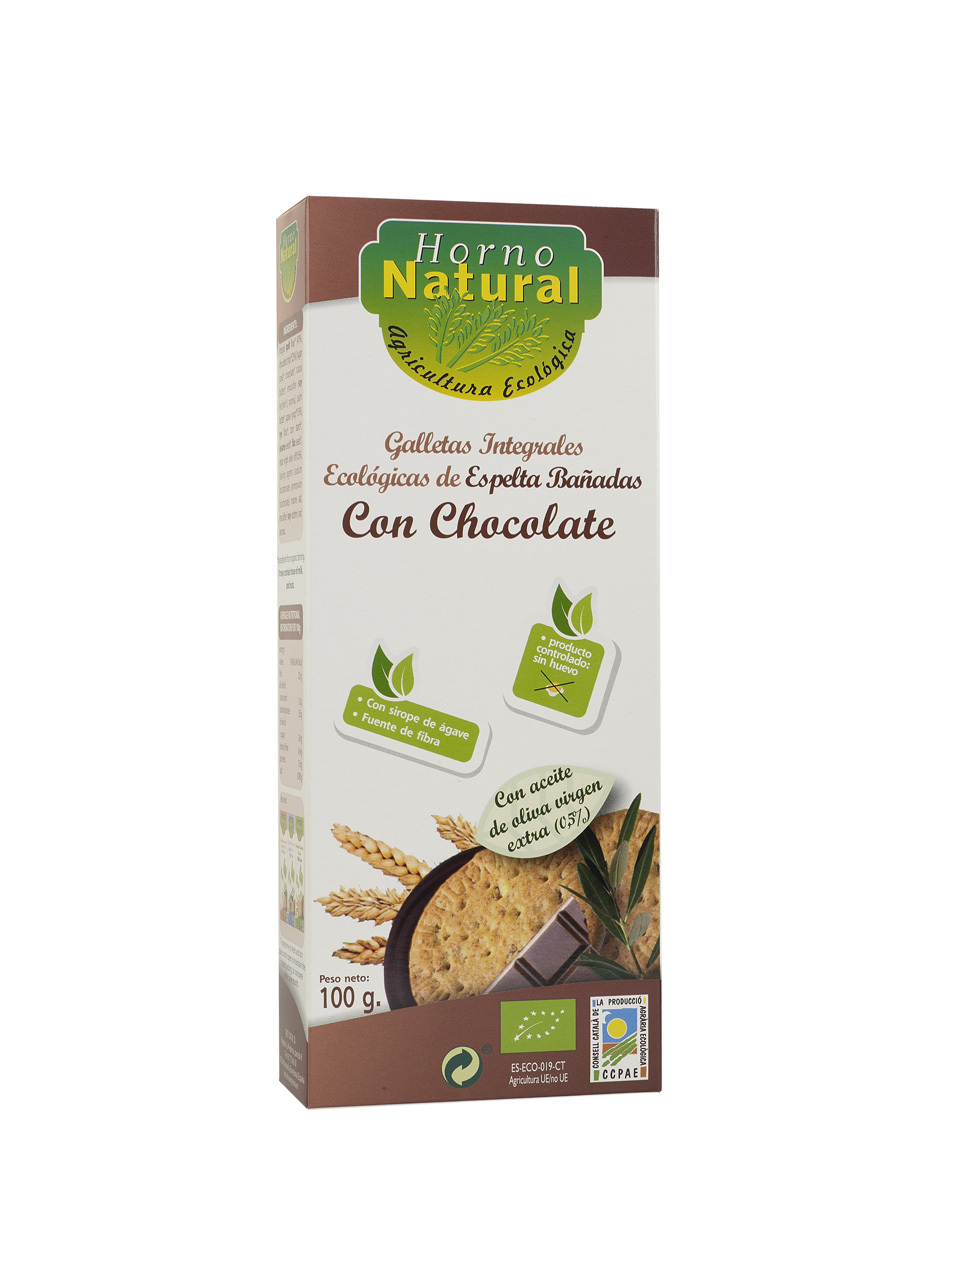 GALLETA BIO INT ESPELTA CHOCOLATE 100GR HORNO NATURAL en Biovegalia